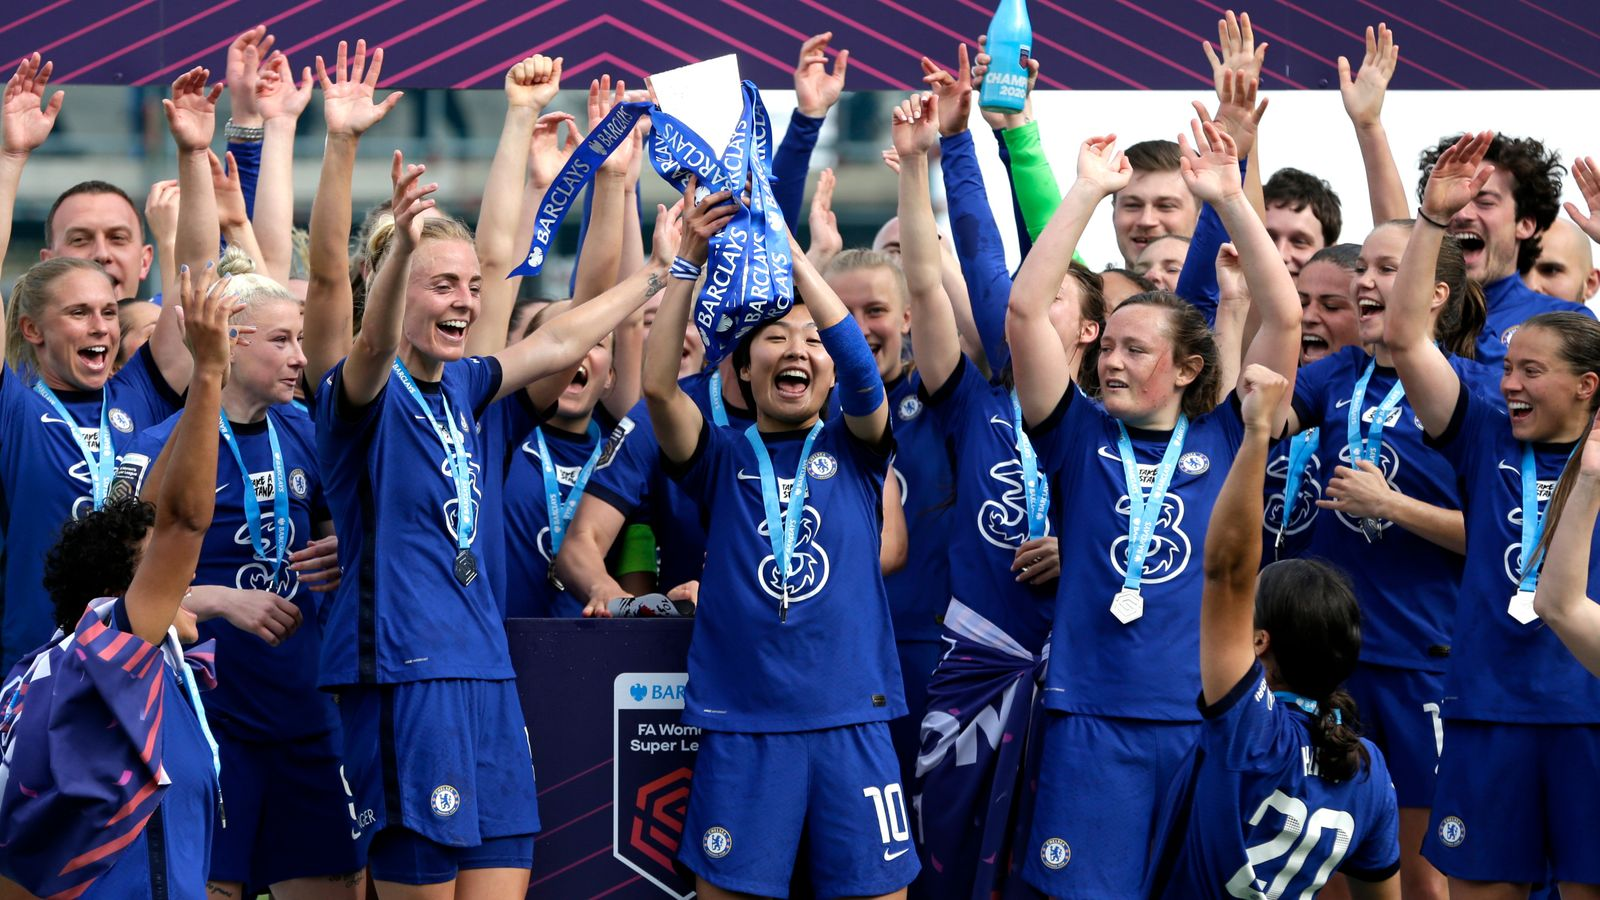 Women's Super League round-up: Chelsea crowned champions, Bristol C relegated